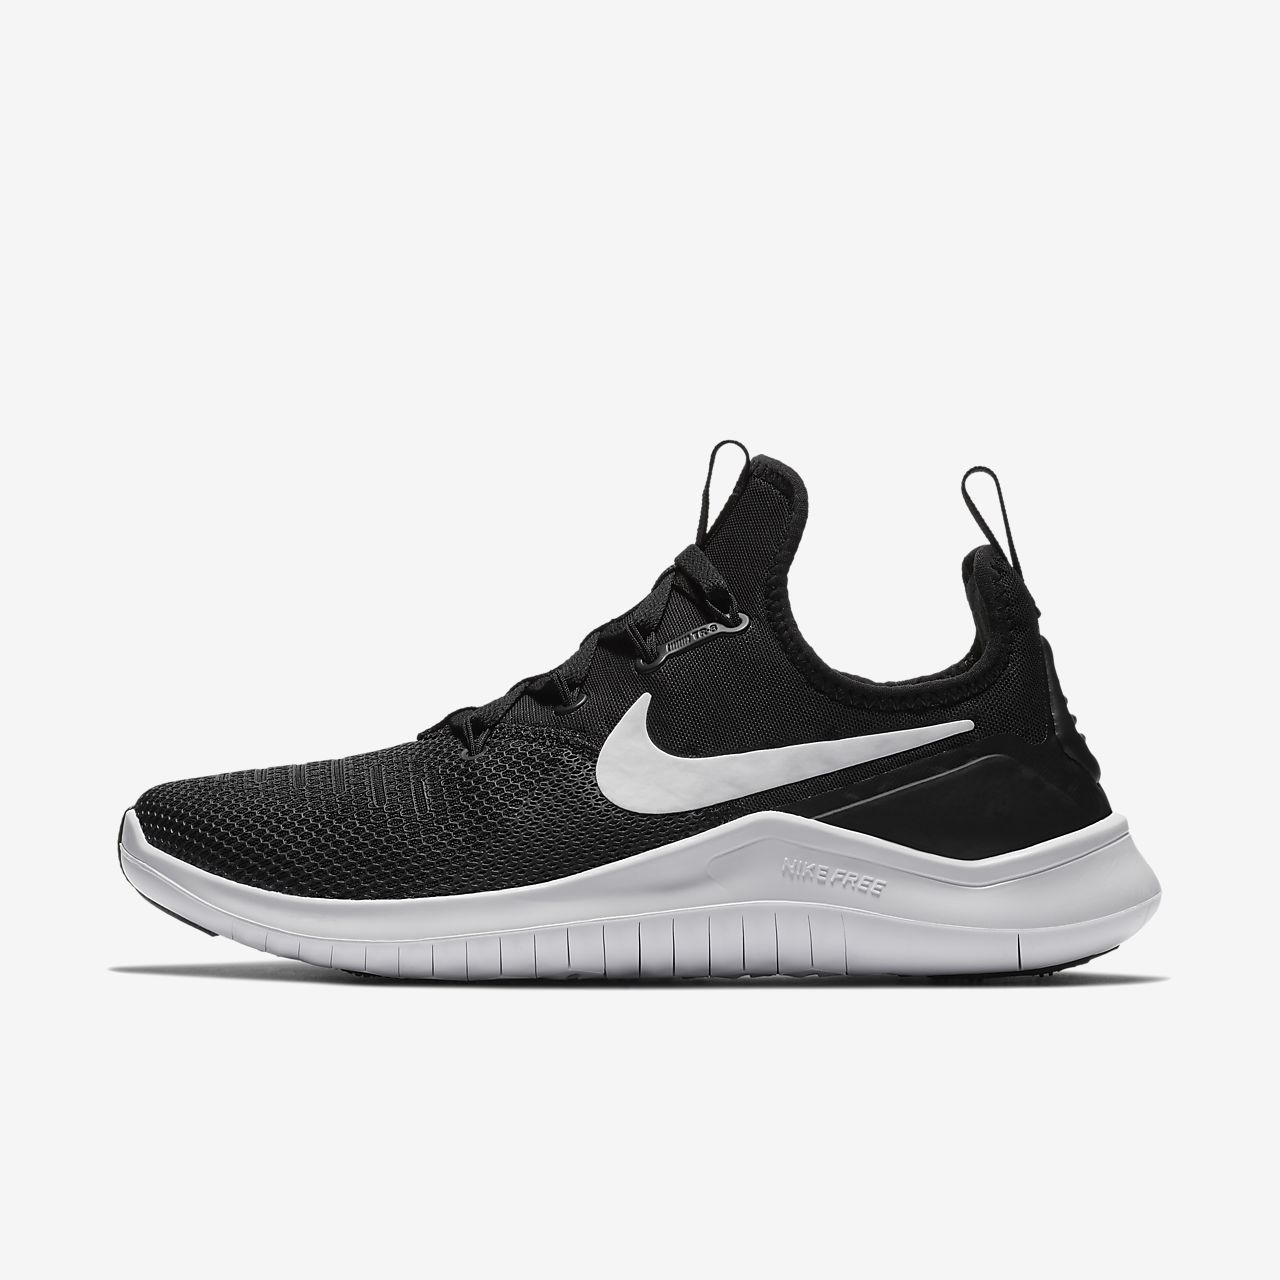 9cb97f862f6af Nike Free TR8 Women s Gym HIIT Cross Training Shoe. Nike.com CA